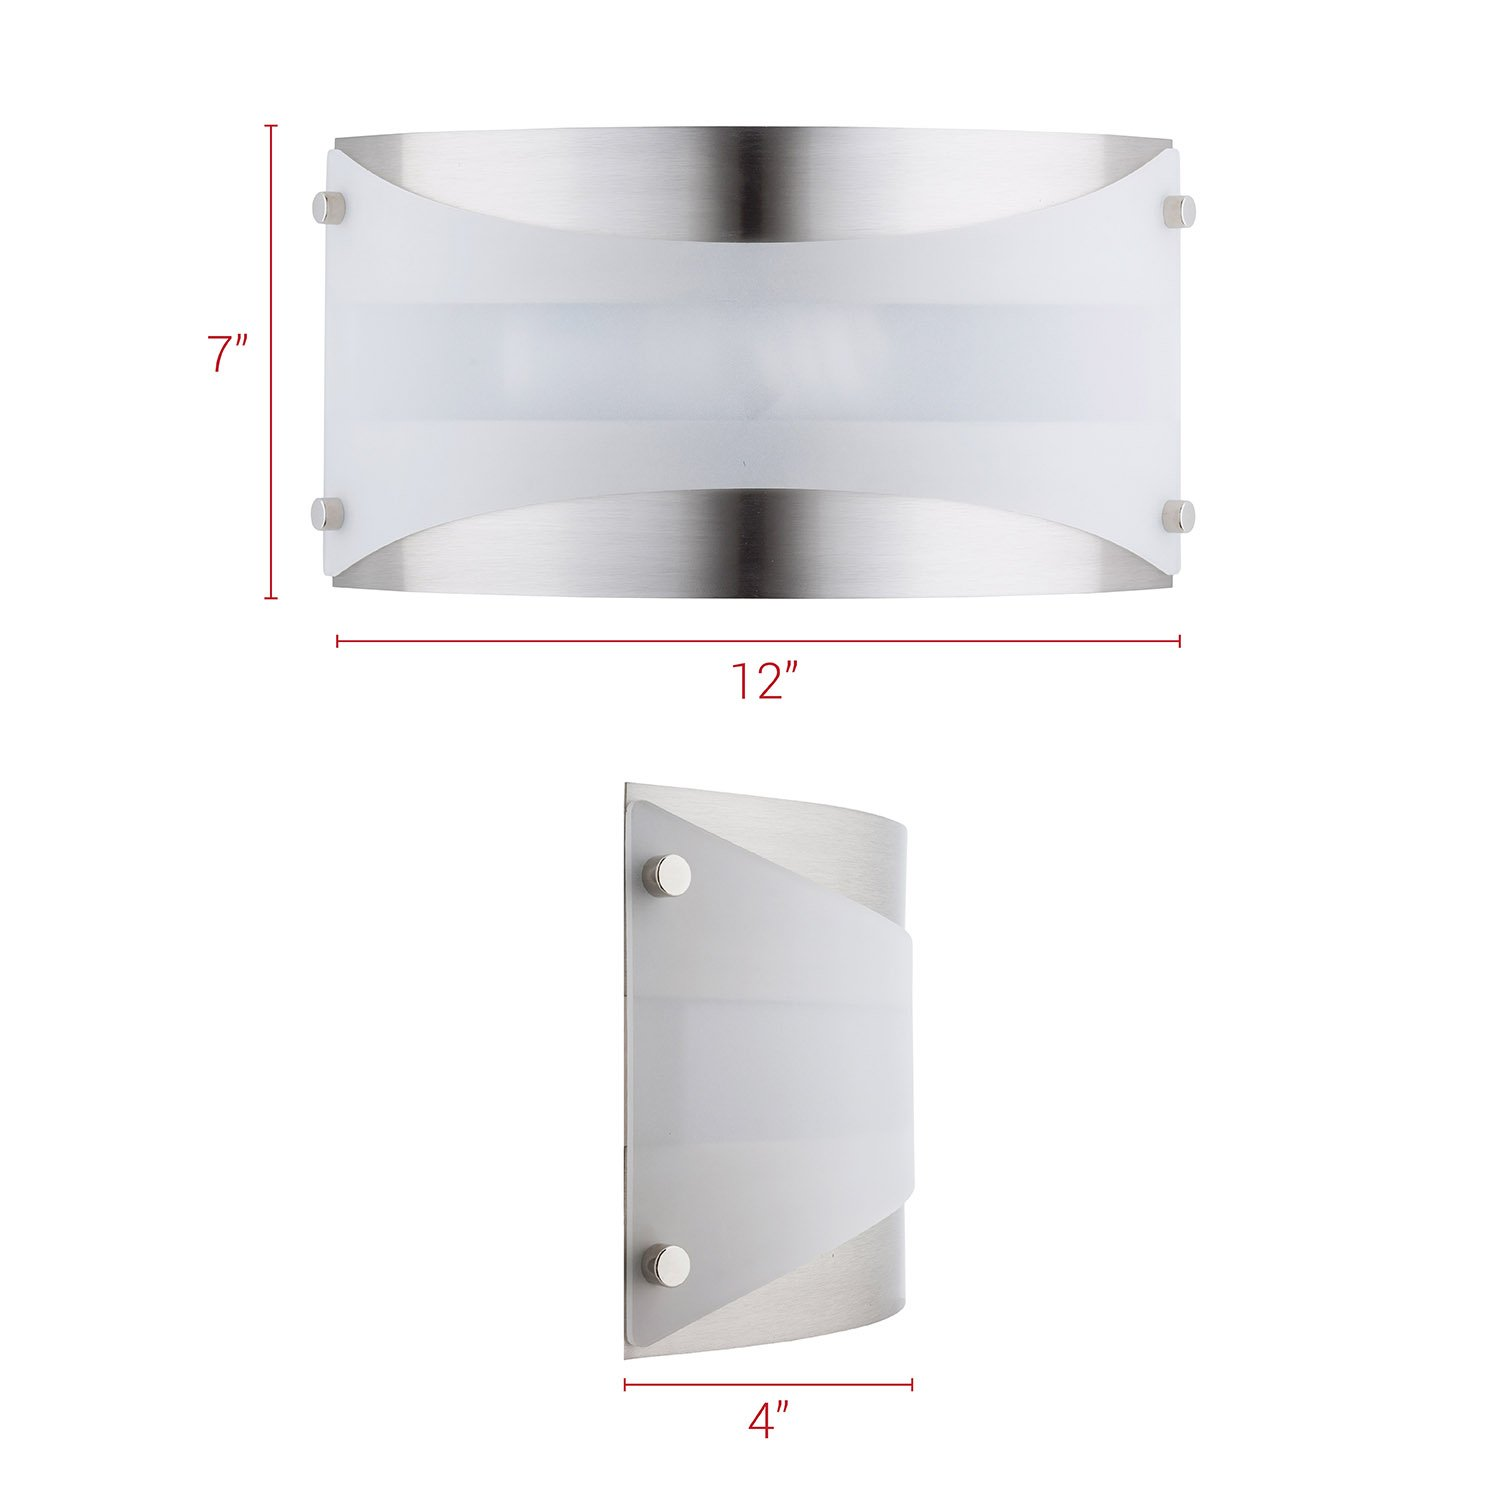 Acciaio Wall Sconce One-Light Lamp Brushed Nickel with White Diffuser - Linea di Liara LL-SC6-BN by Linea di Liara (Image #4)